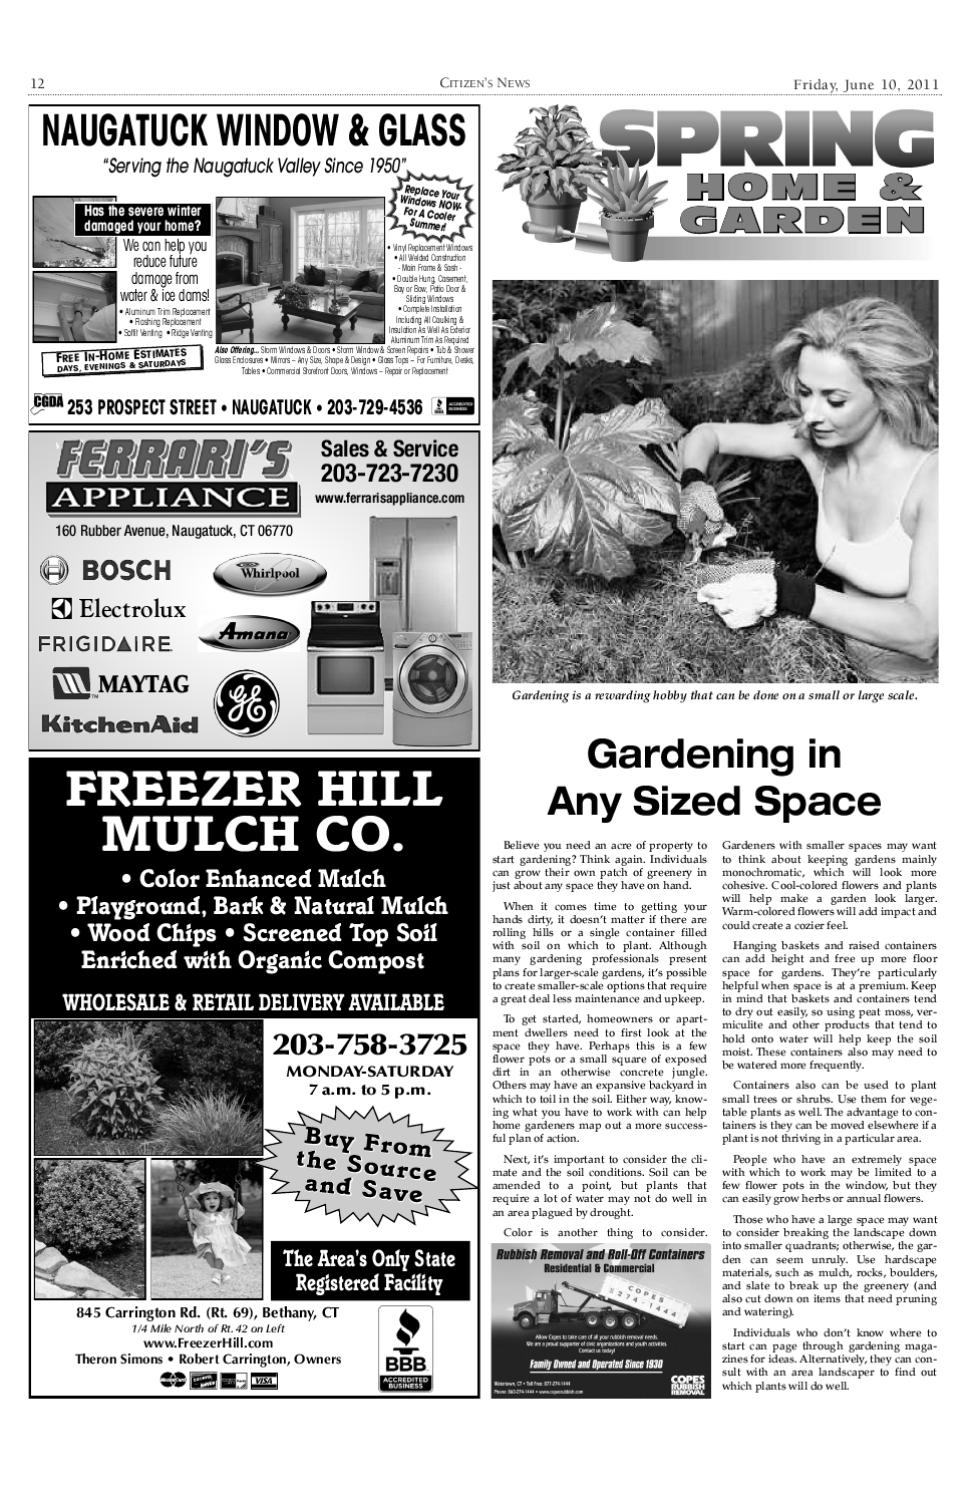 Home and garden by citizen 39 s news issuu for Naugatuck glass company